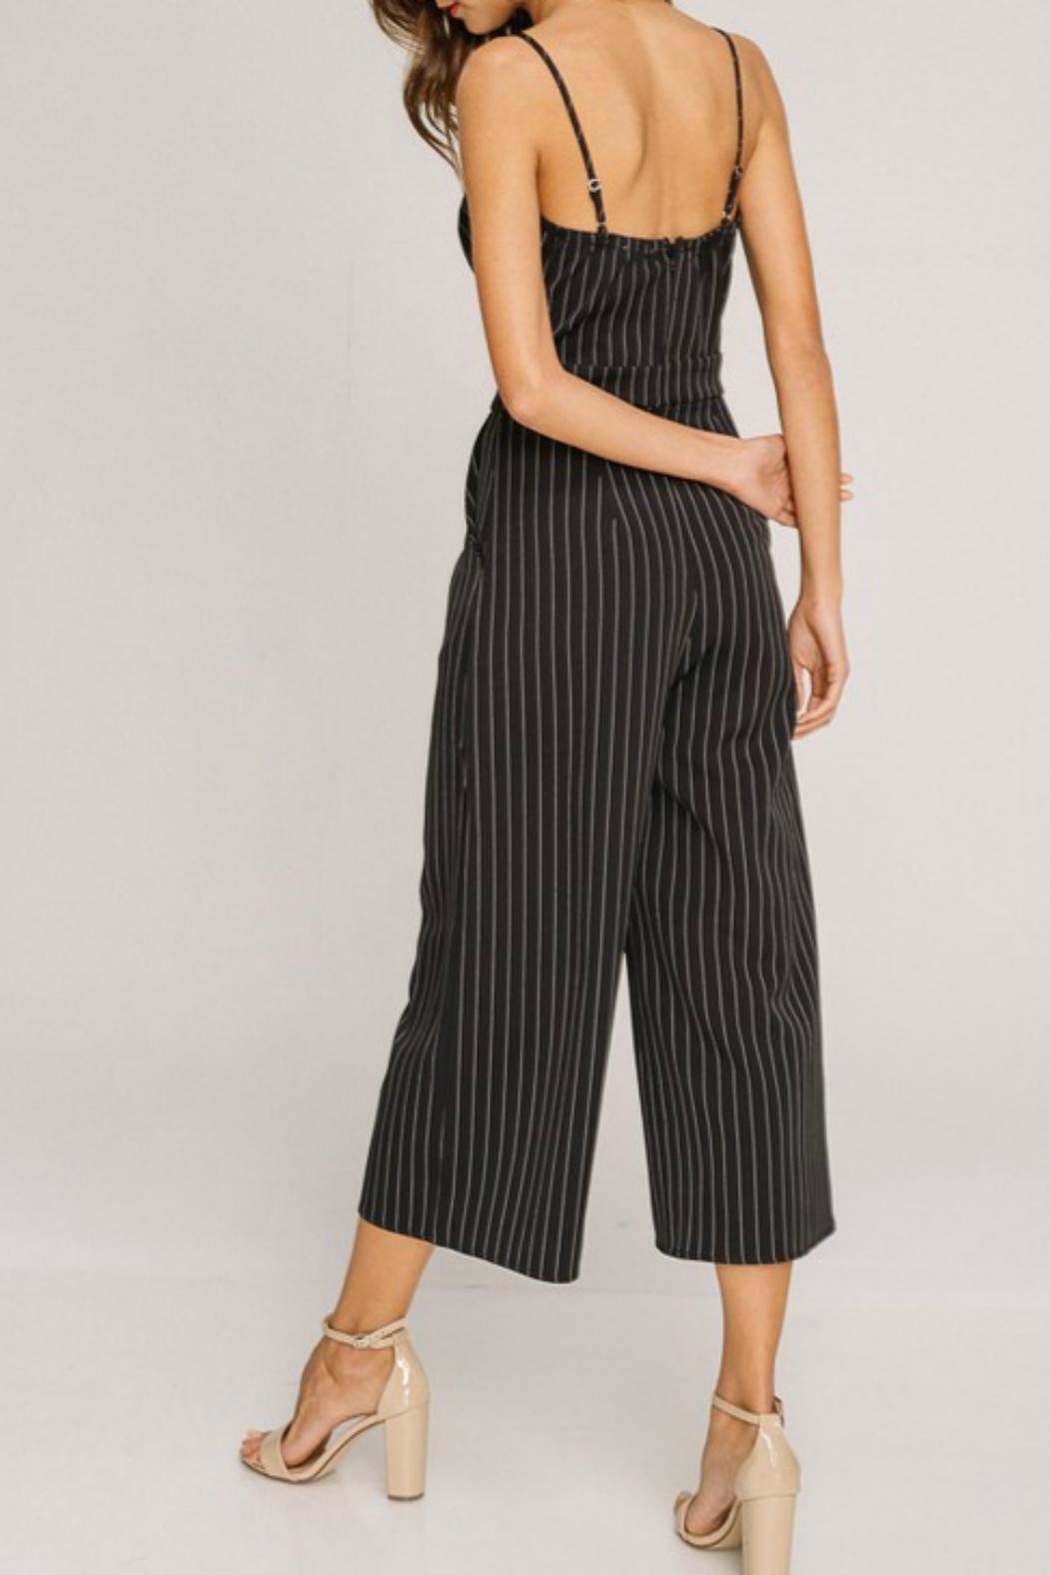 Pretty Little Things Pinstripe Jumpsuit - Front Full Image